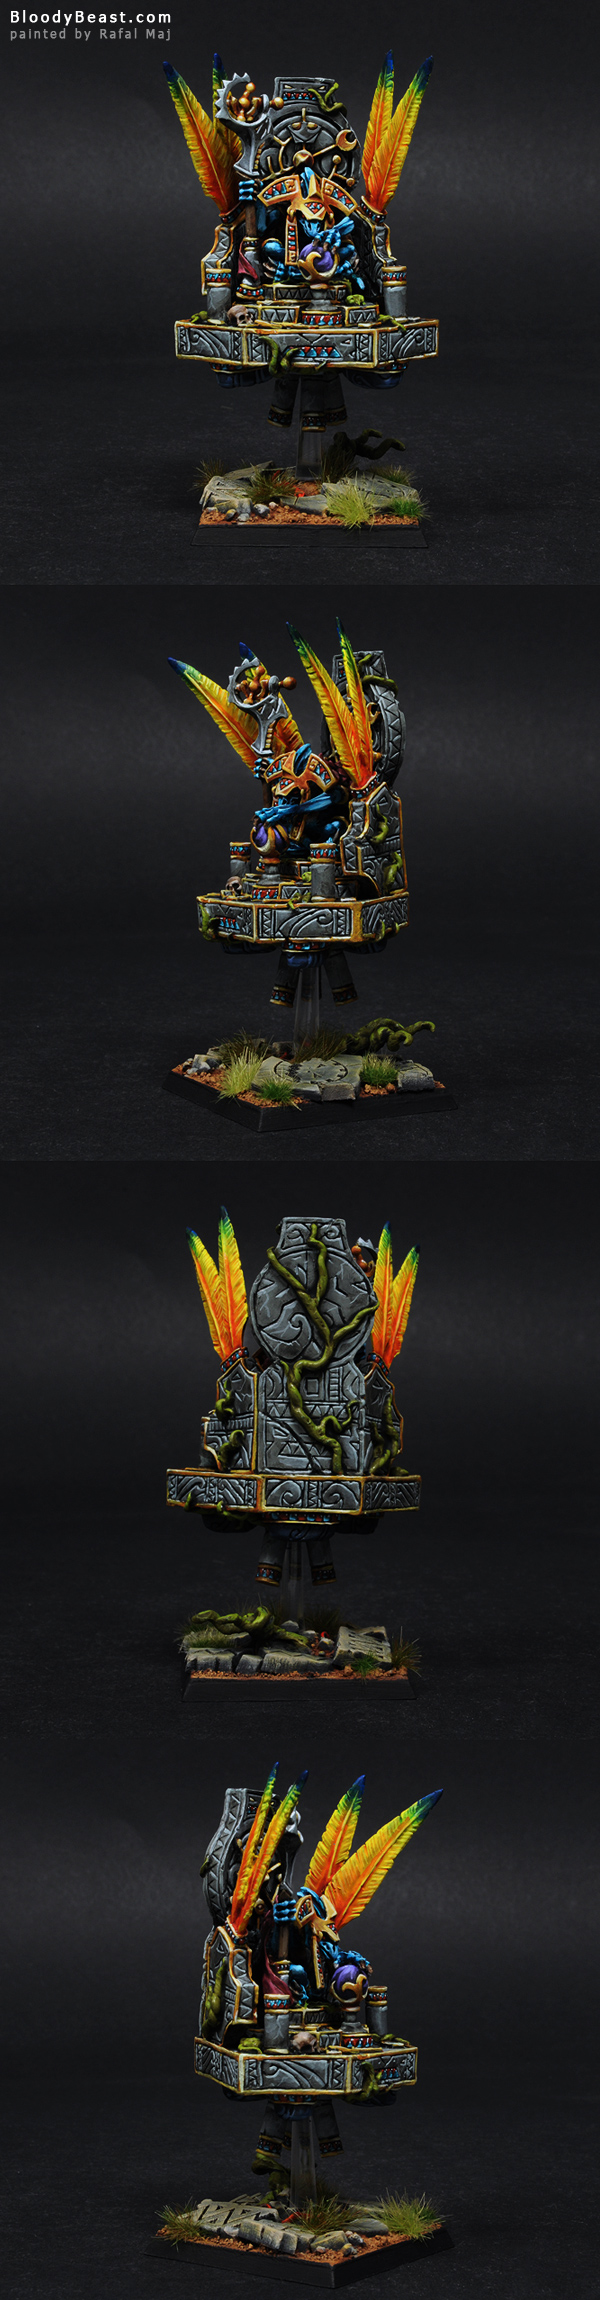 Lizardmen Tetto'Eko painted by Rafal Maj (BloodyBeast.com)